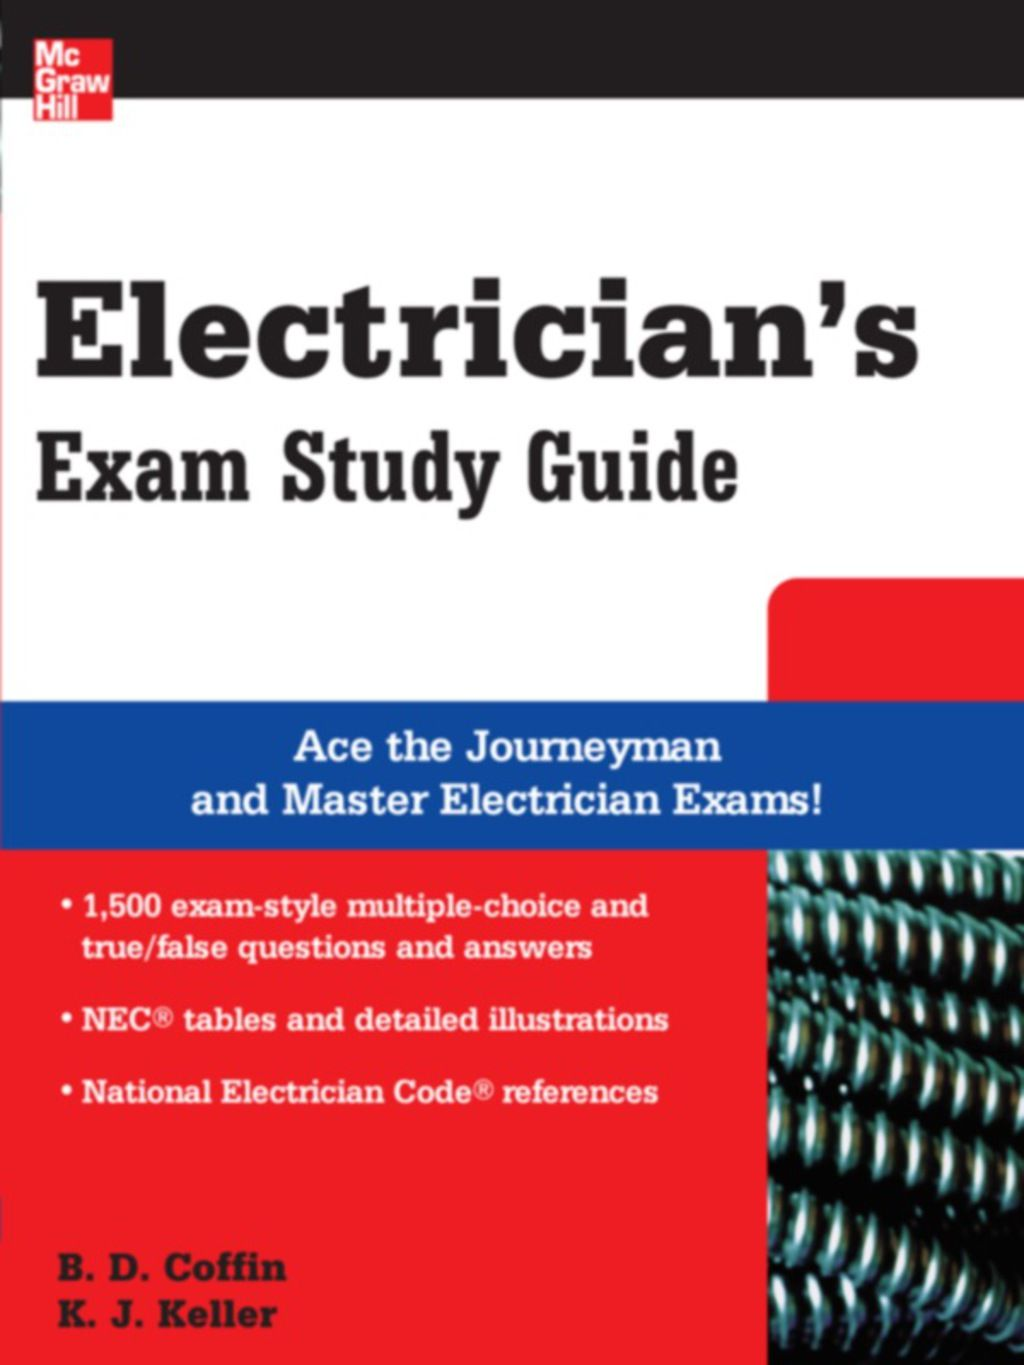 Electrician's Exam Study Guide (eBook) in 2019 Exam